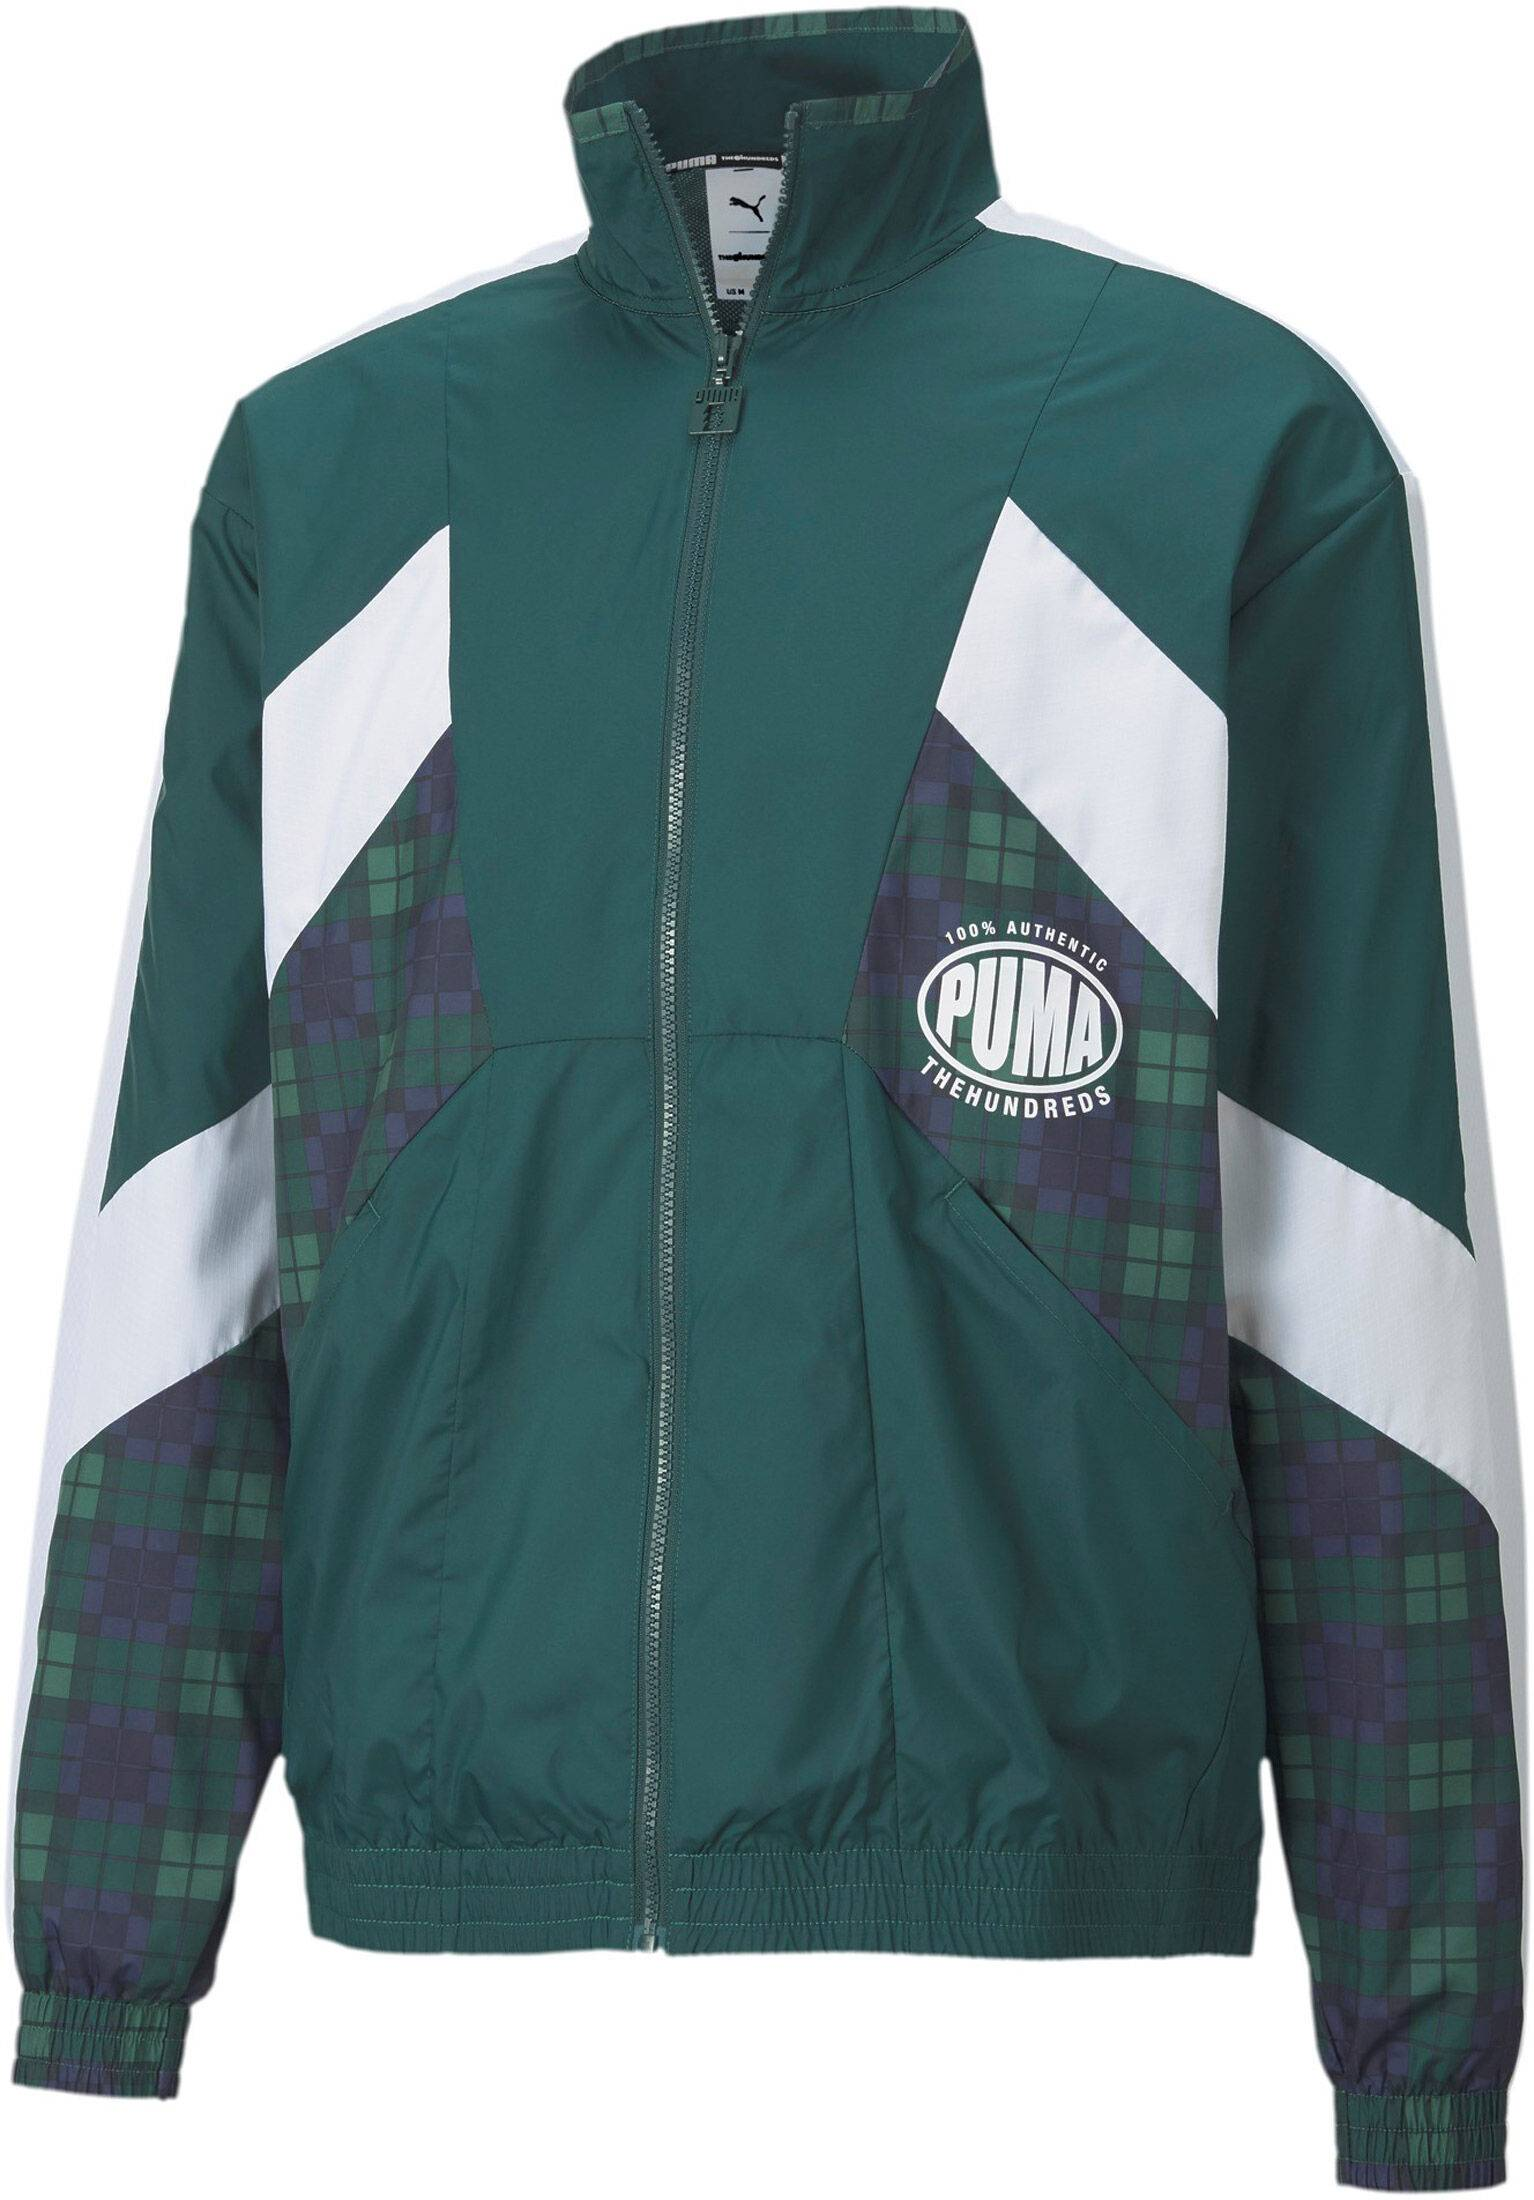 Puma The Hundreds x, taille S, homme, vert